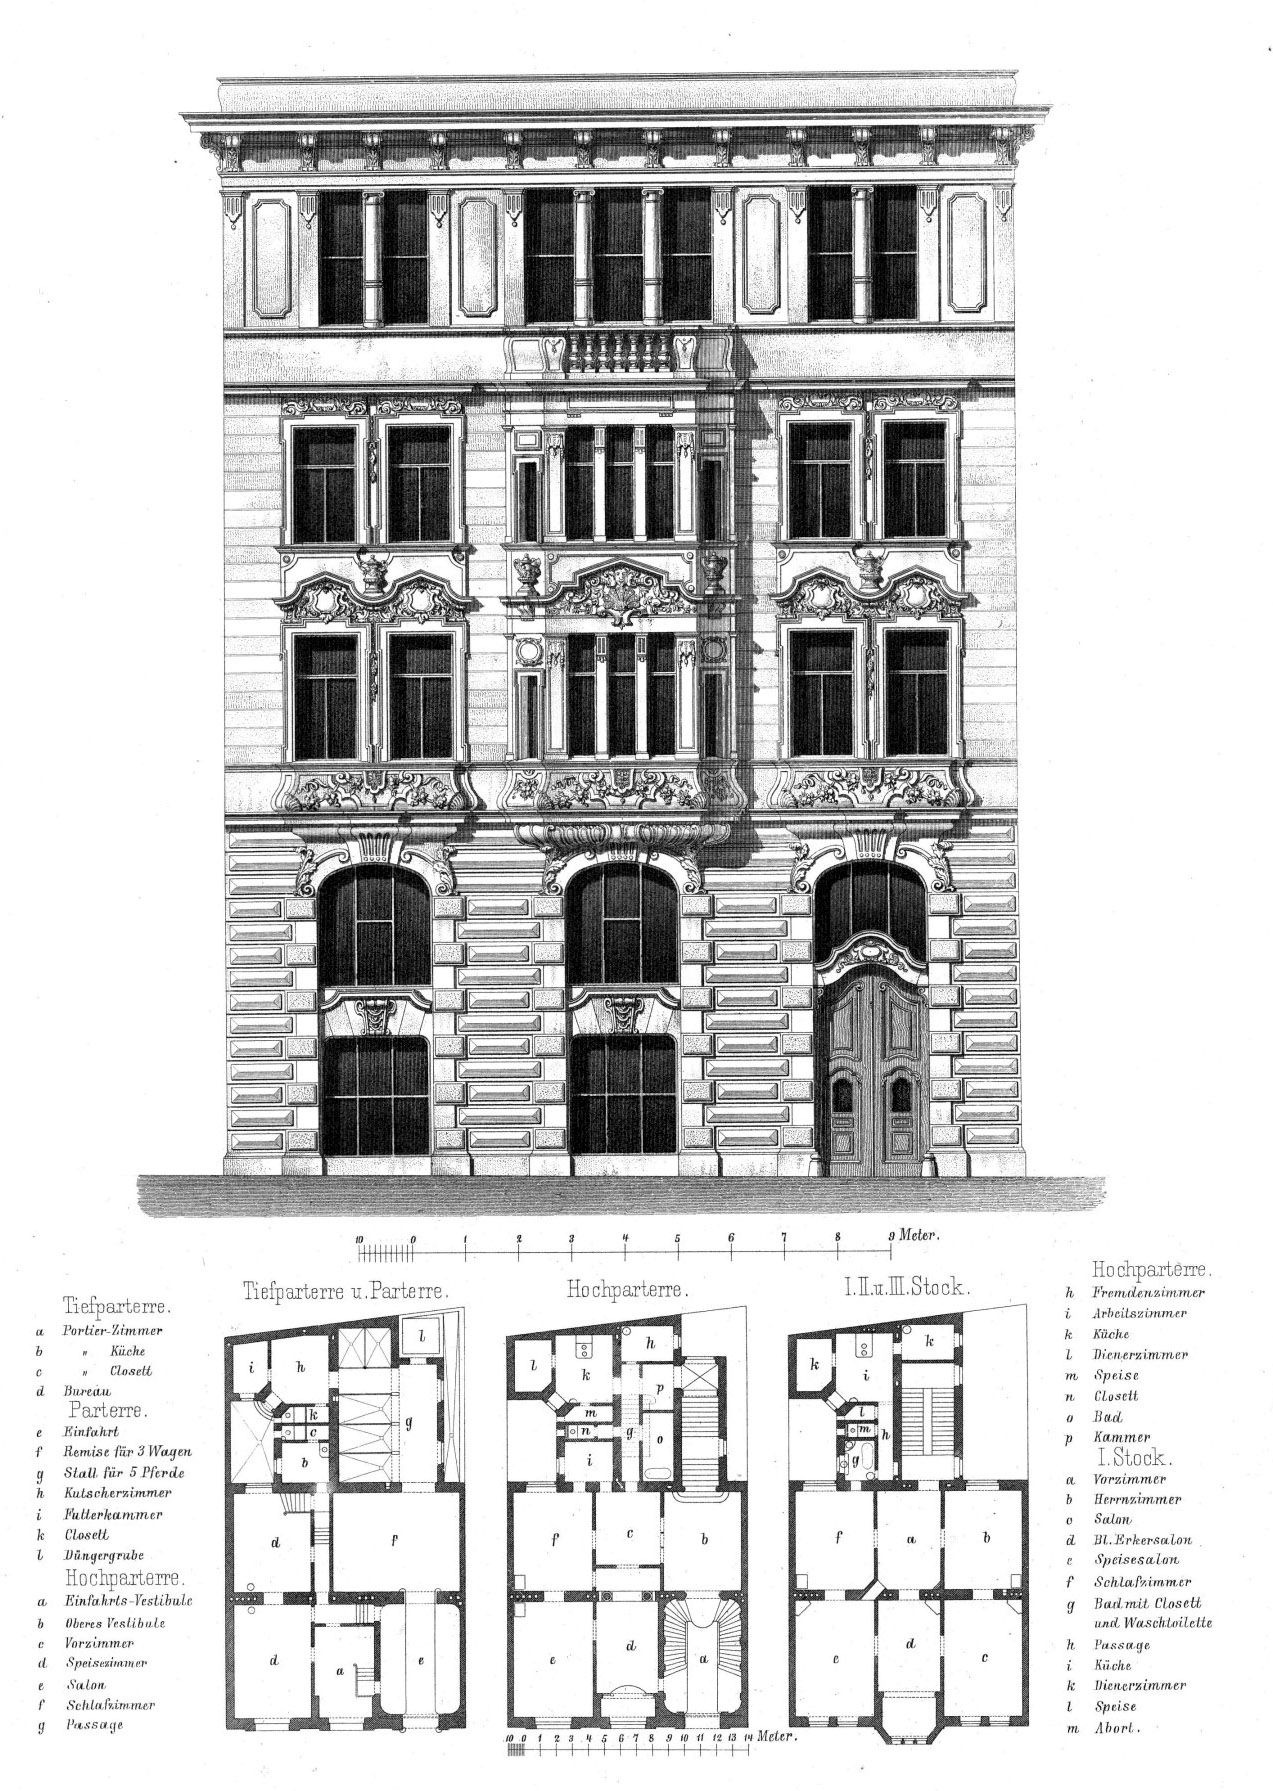 Elevation Plan Building : Elevation and plans for a residential building vienna